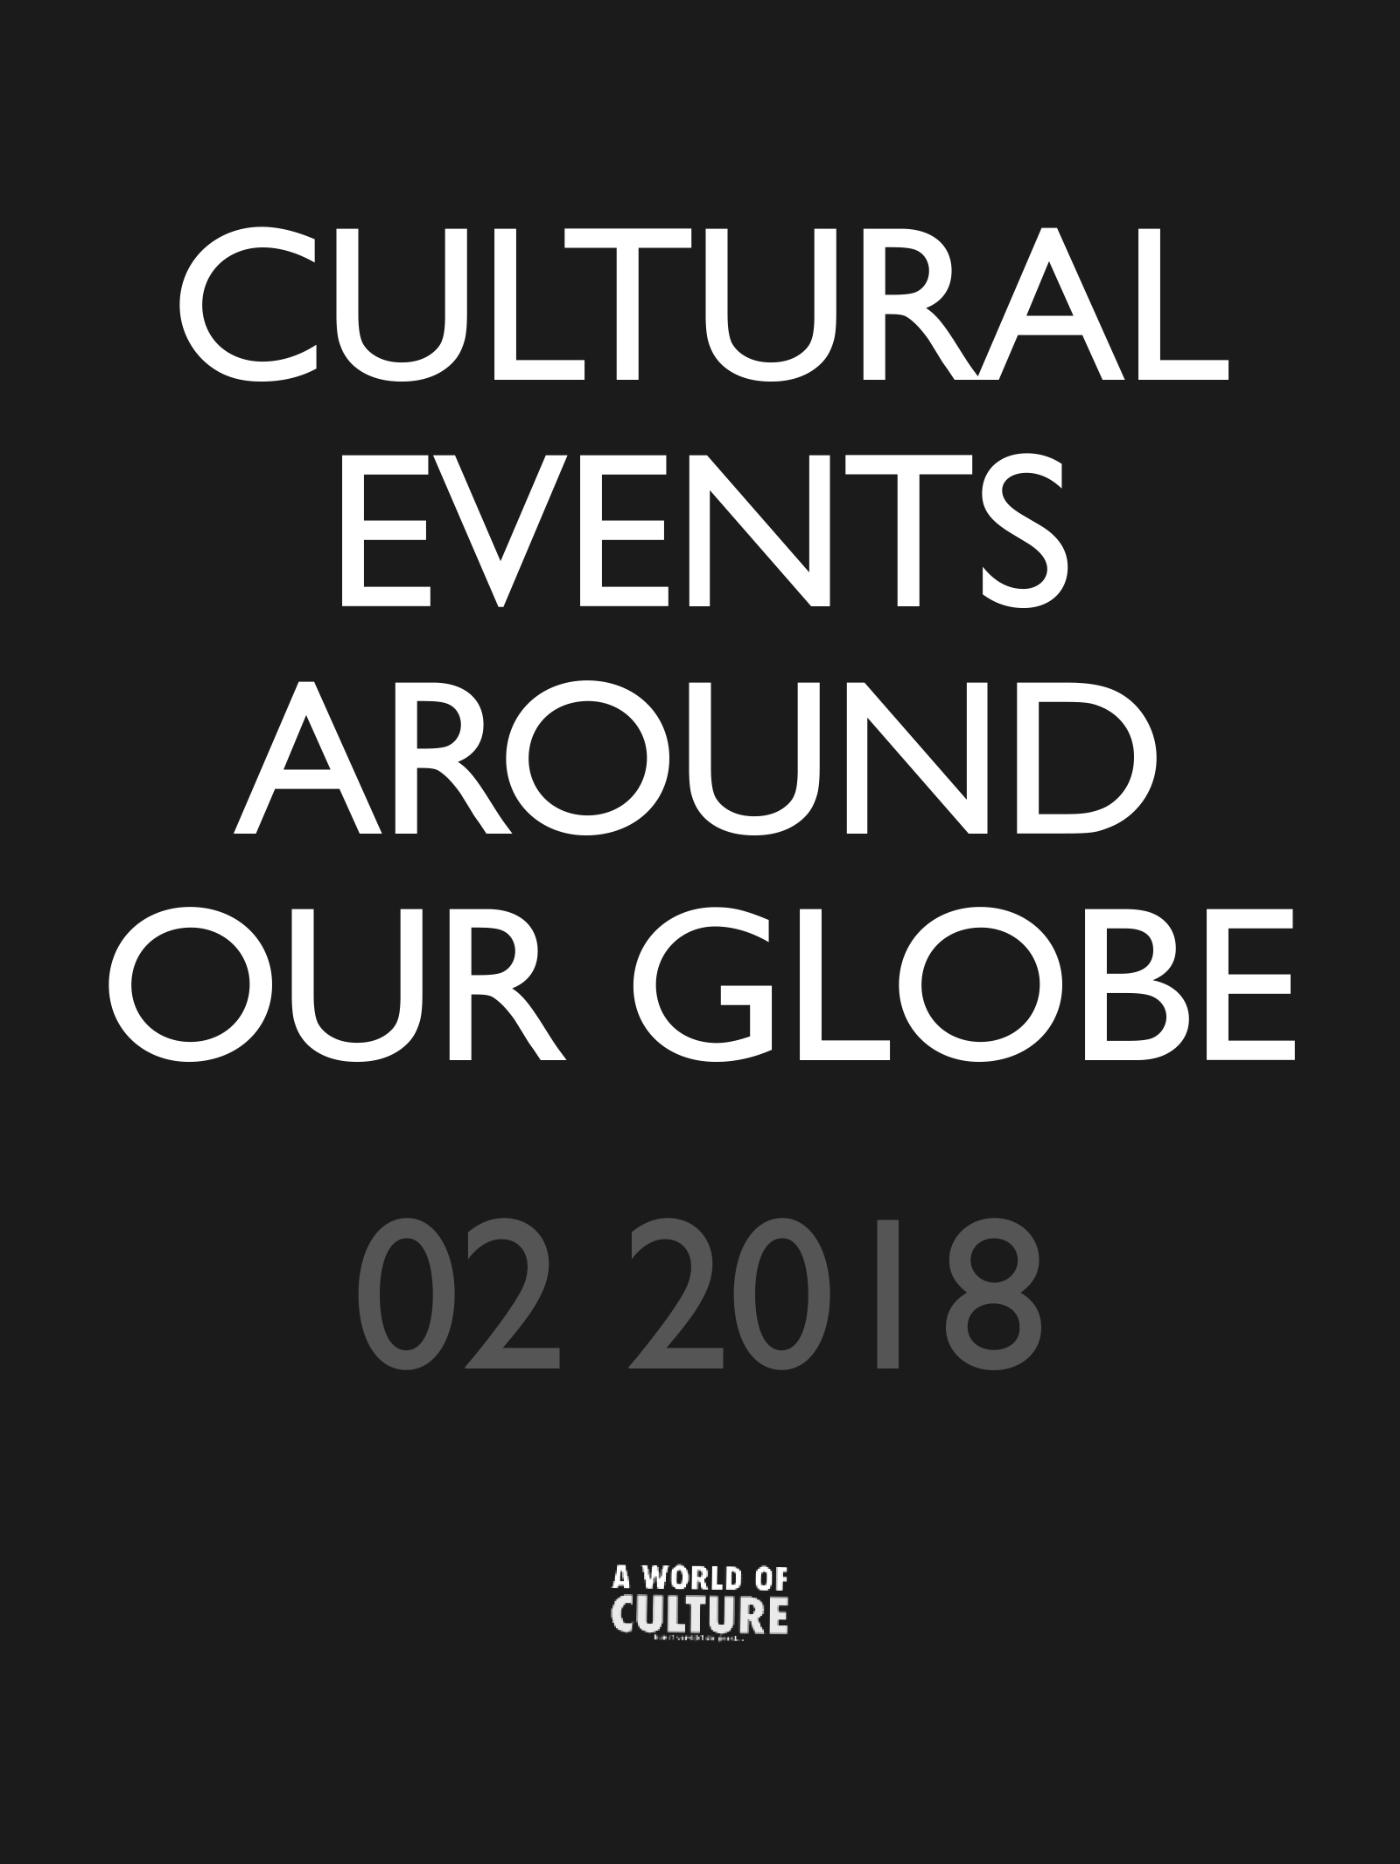 Cultural events around our globe 02 2018